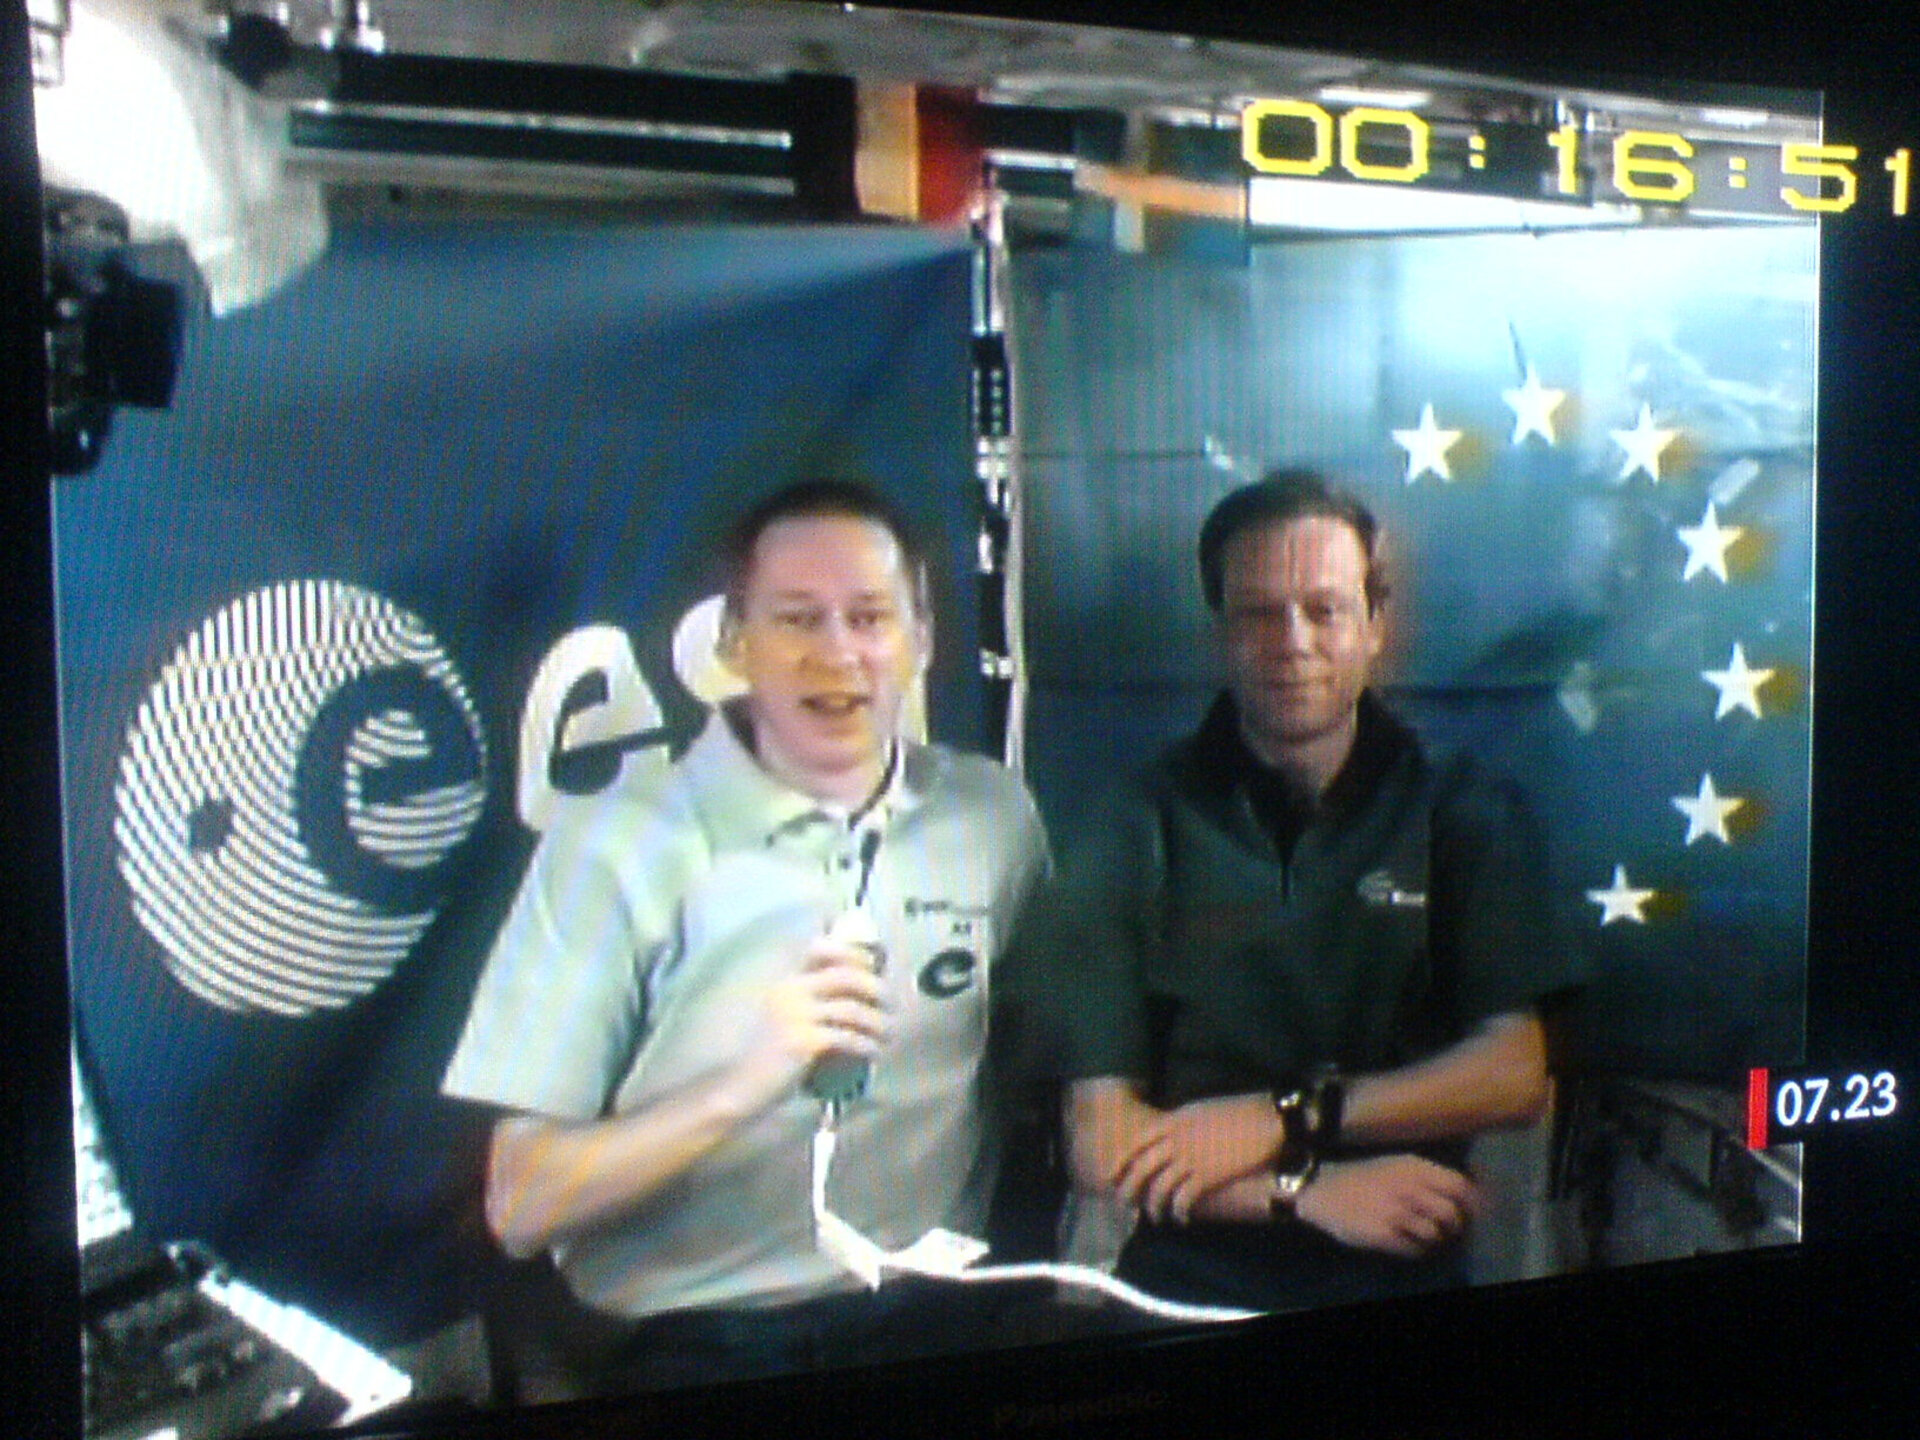 ESA astronauts Christer Fuglesang and Frank De Winne participate in a television interview